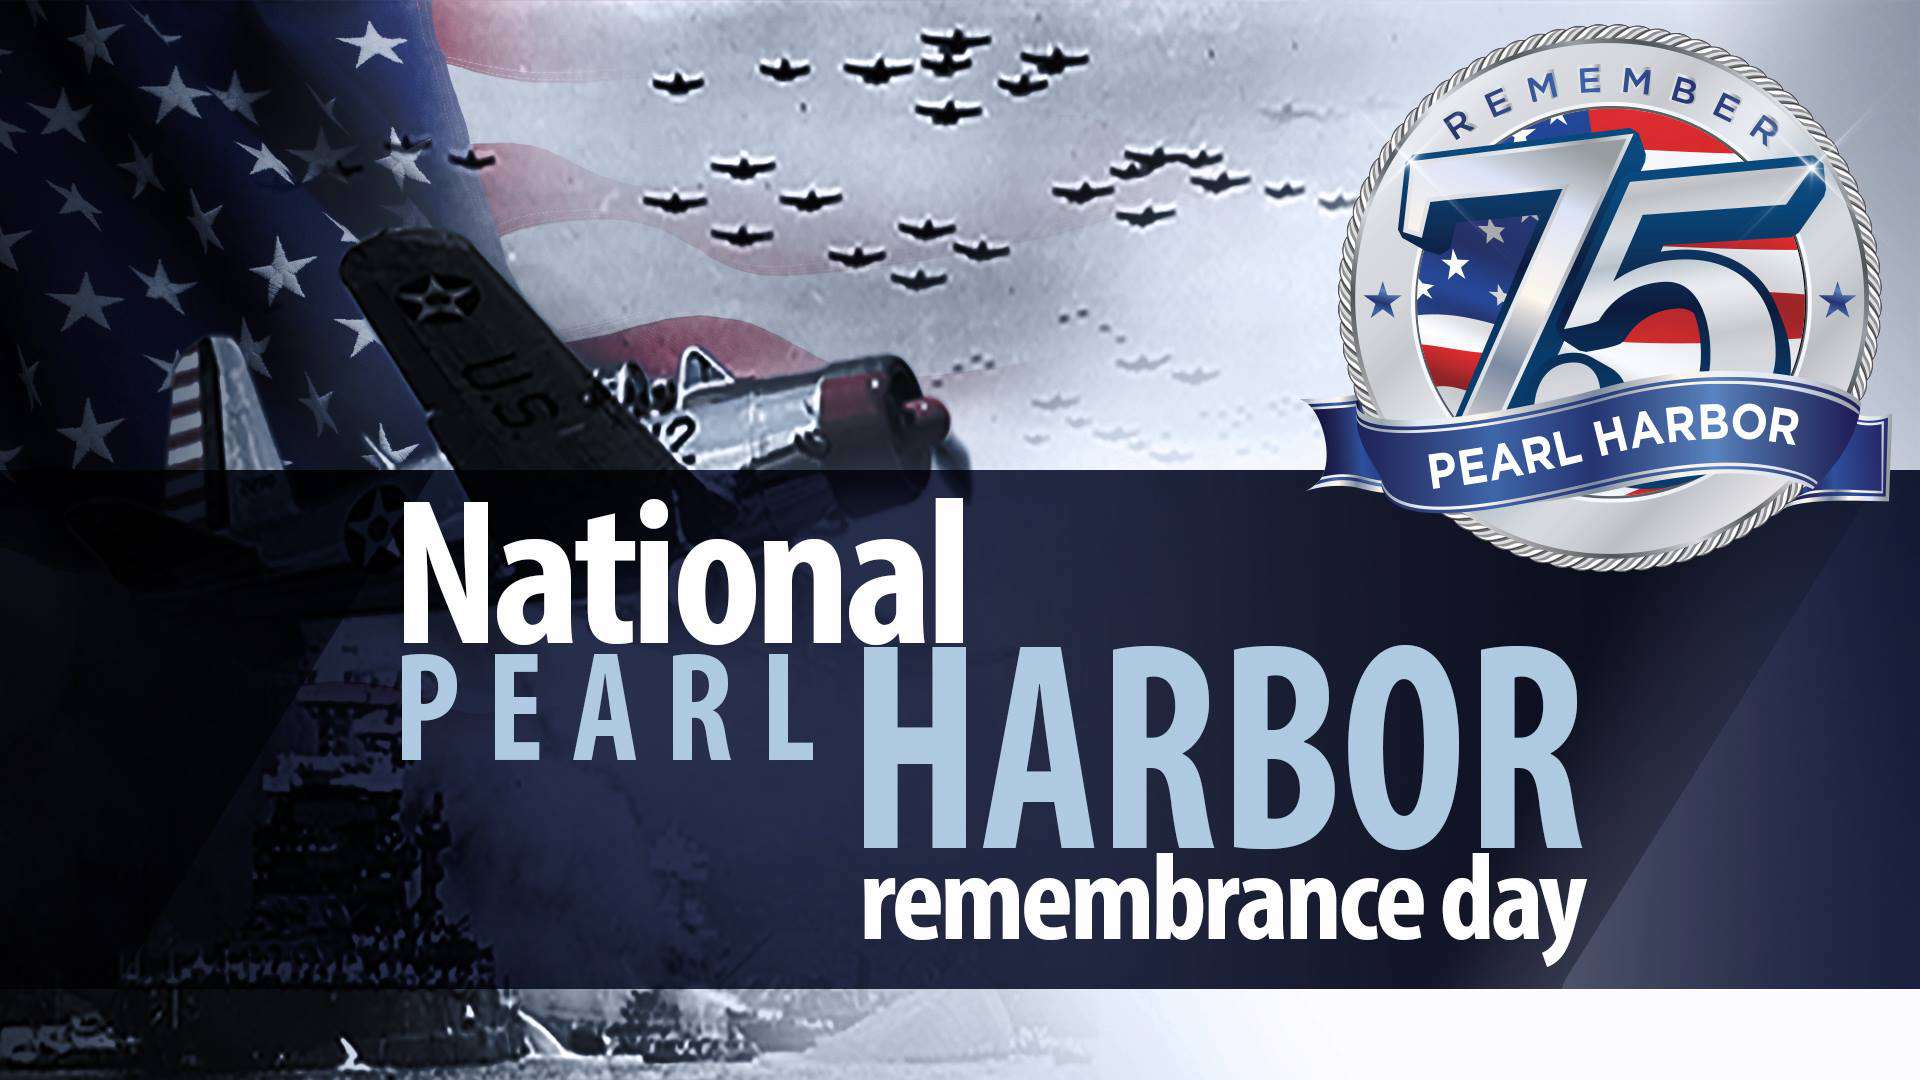 National Pearl Harbor Day of Remembrance Wishes Photos